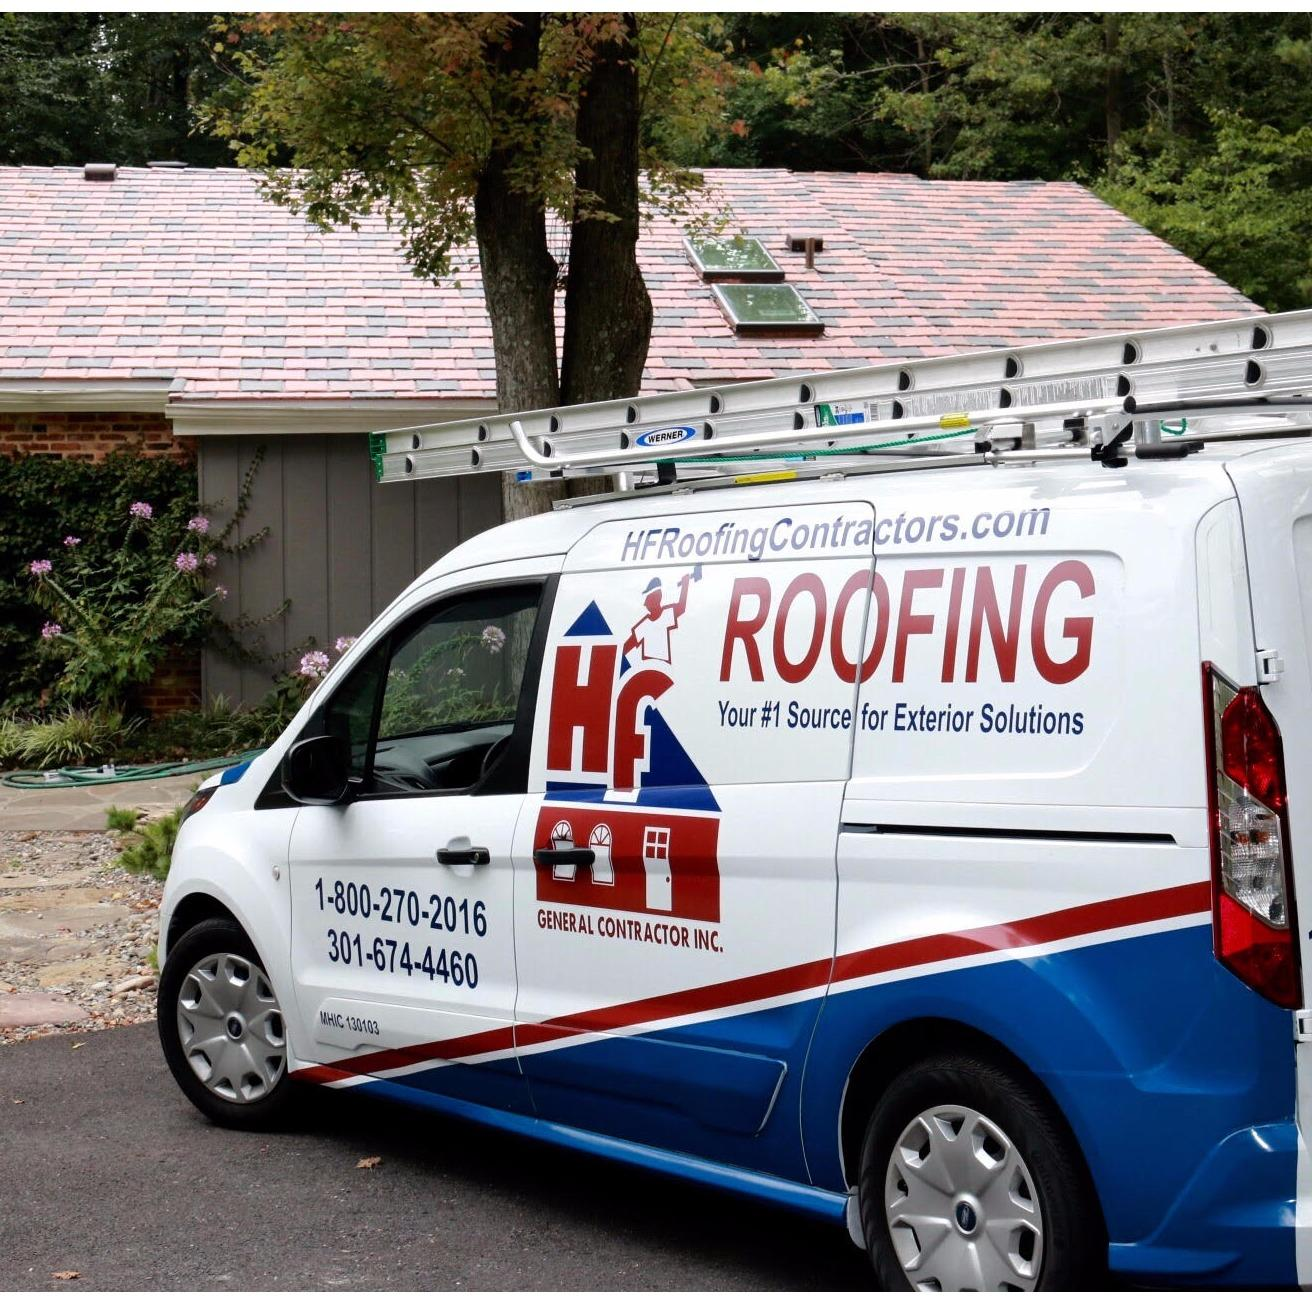 image of the HF Roofing Contractor Inc